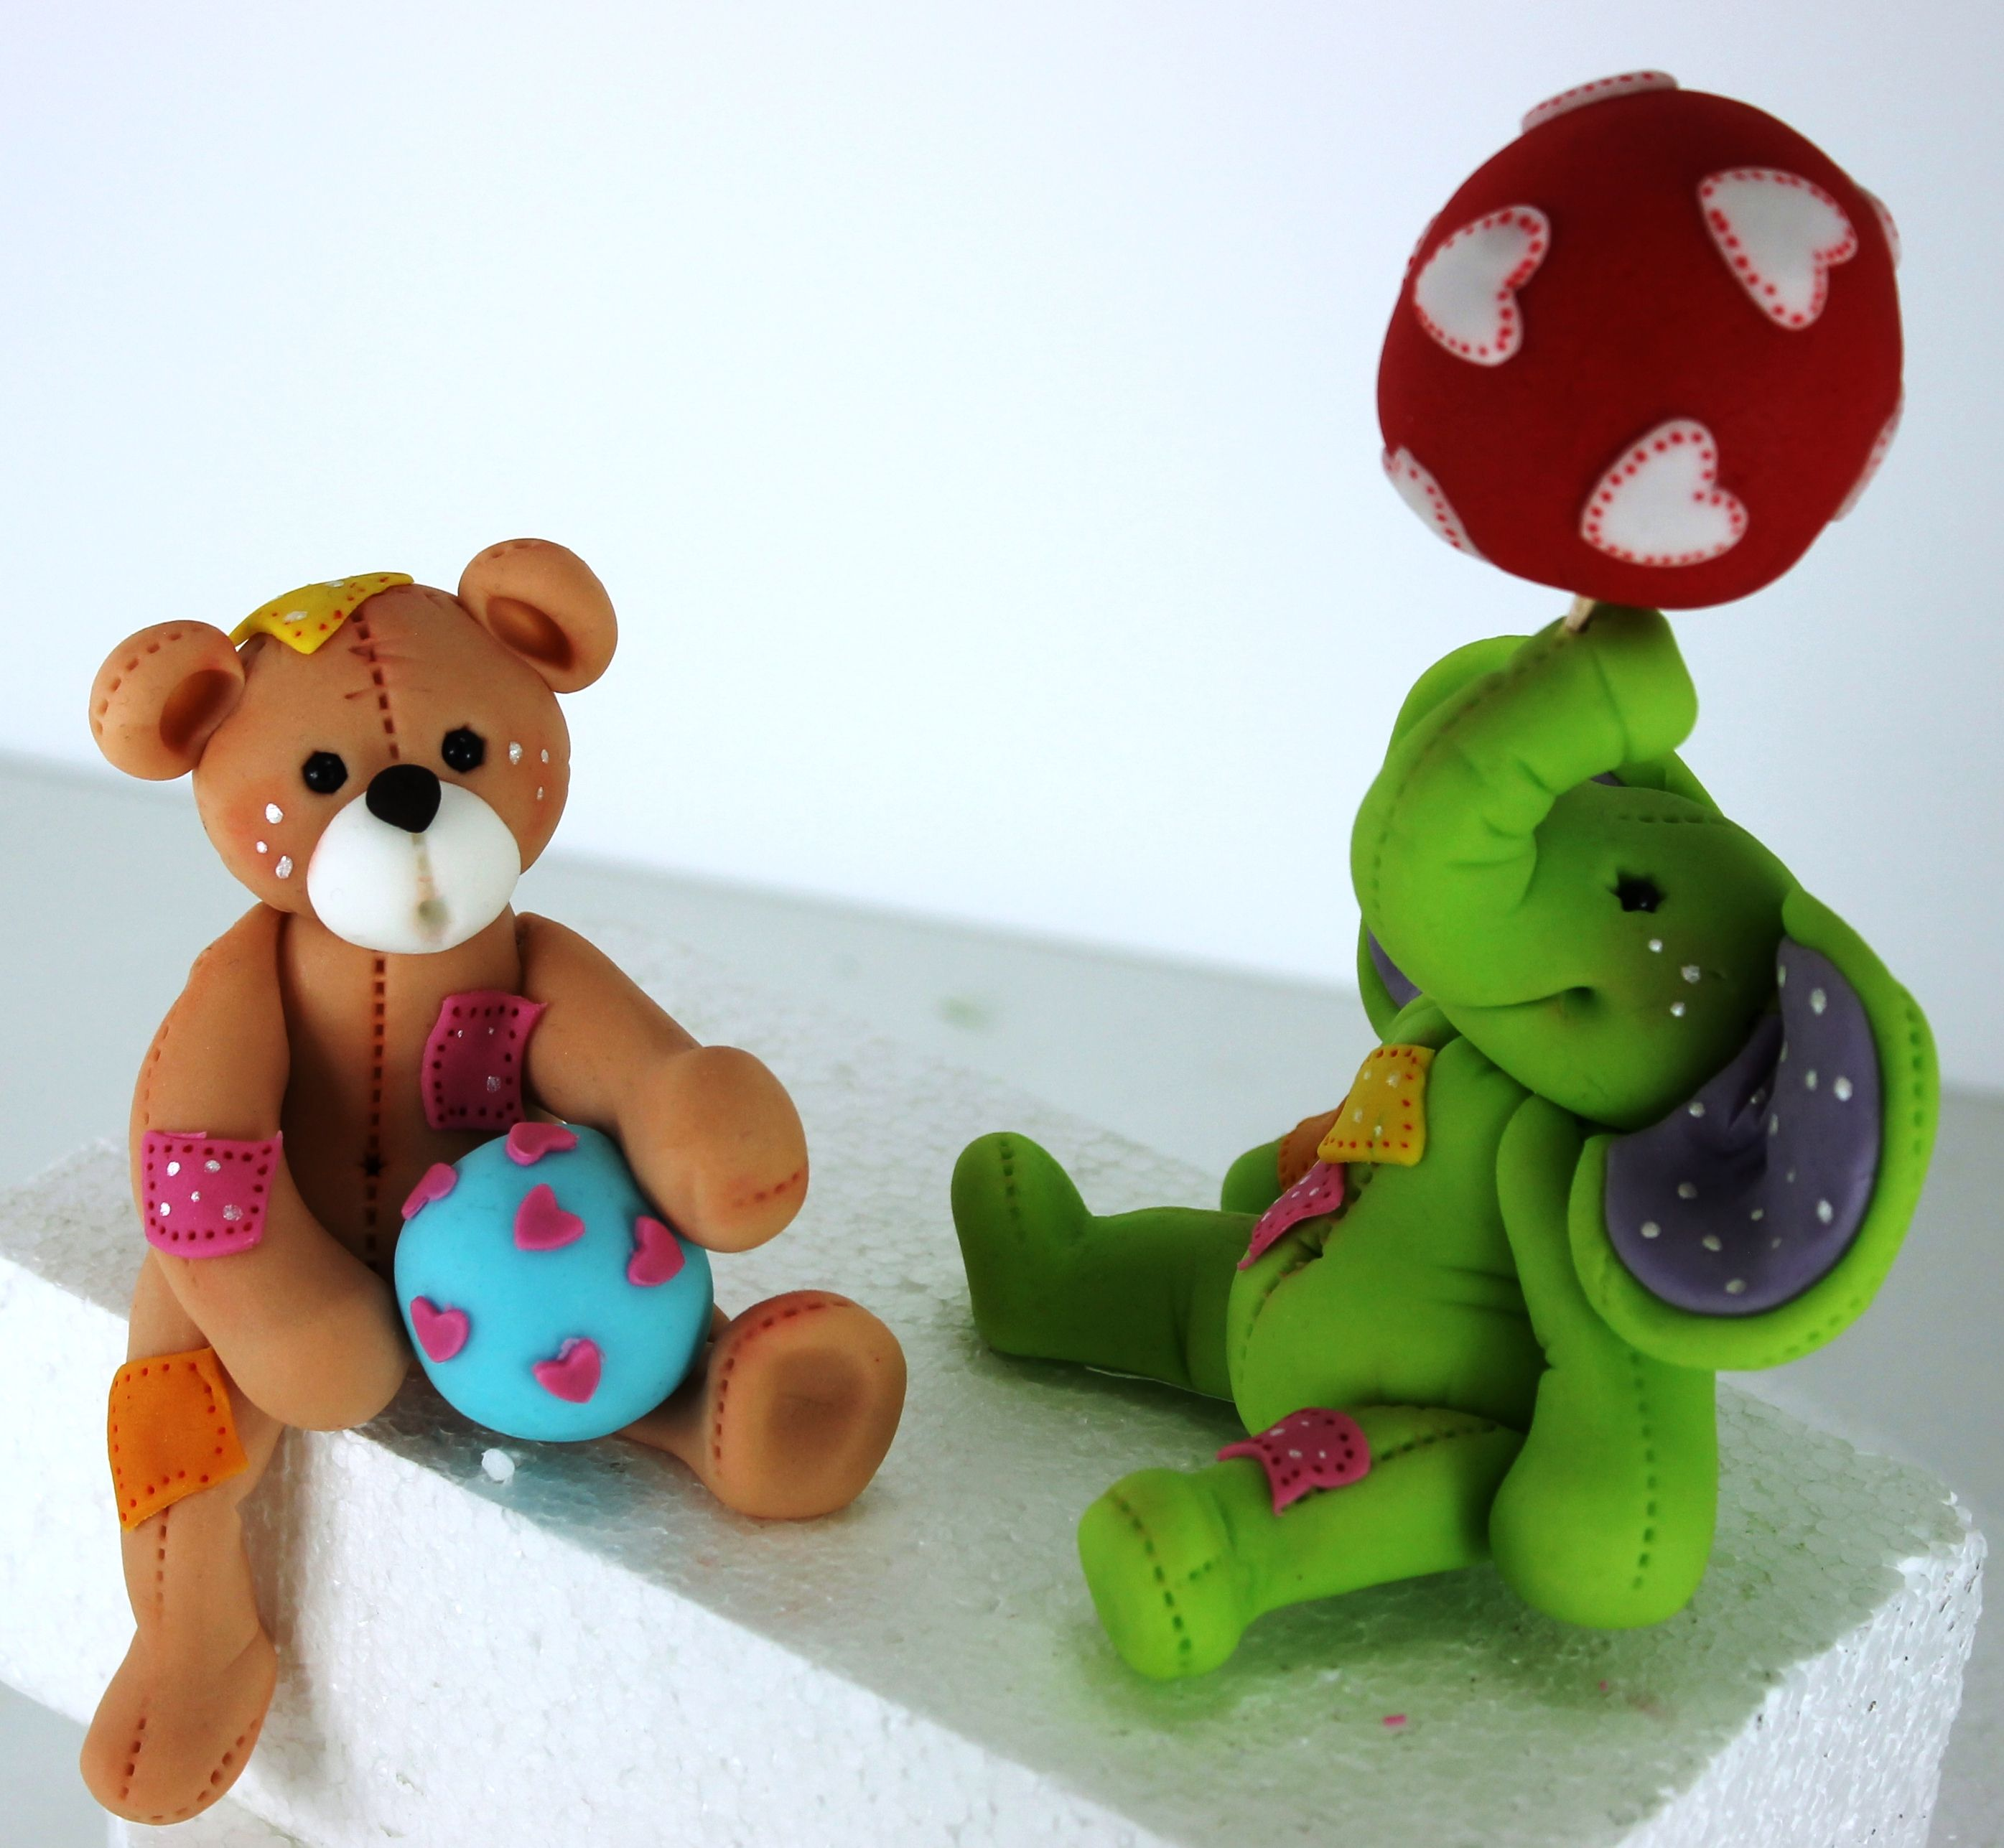 pin by viorica dinu on my own sugar toys | pinterest | clay, polymer